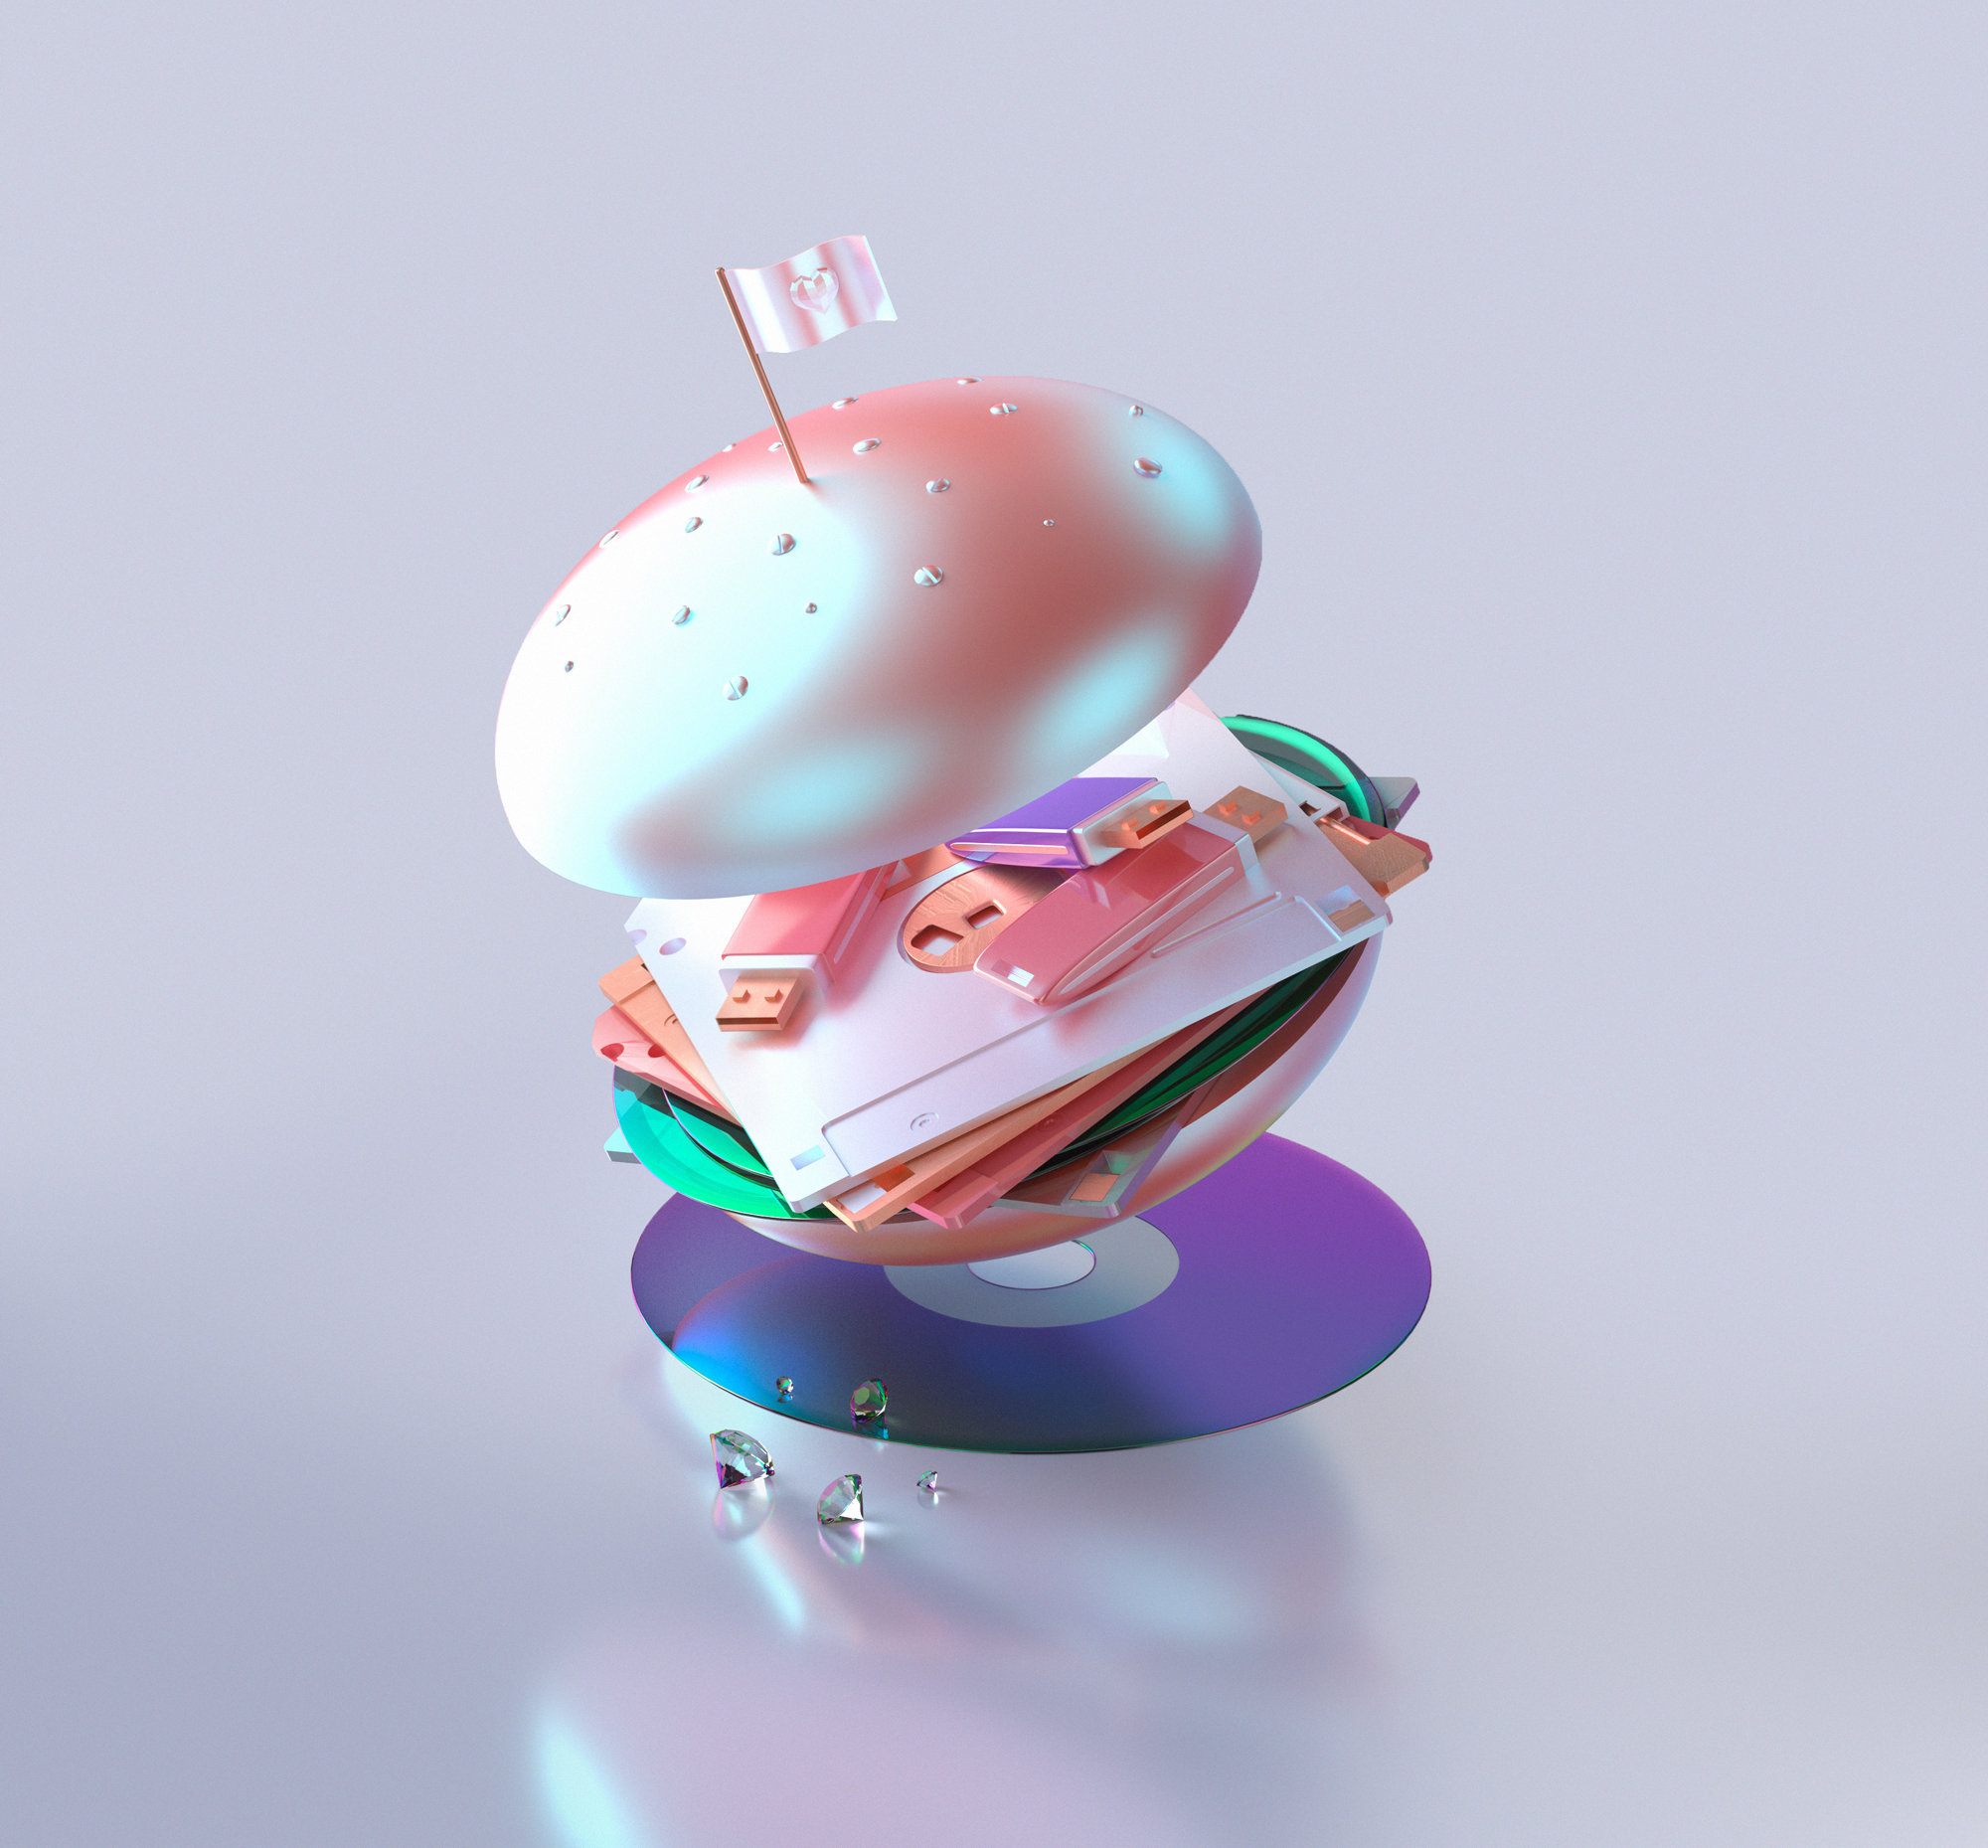 3D Burgers & GIF Lips: The Pop-Minimalist Art of Blake Kathryn